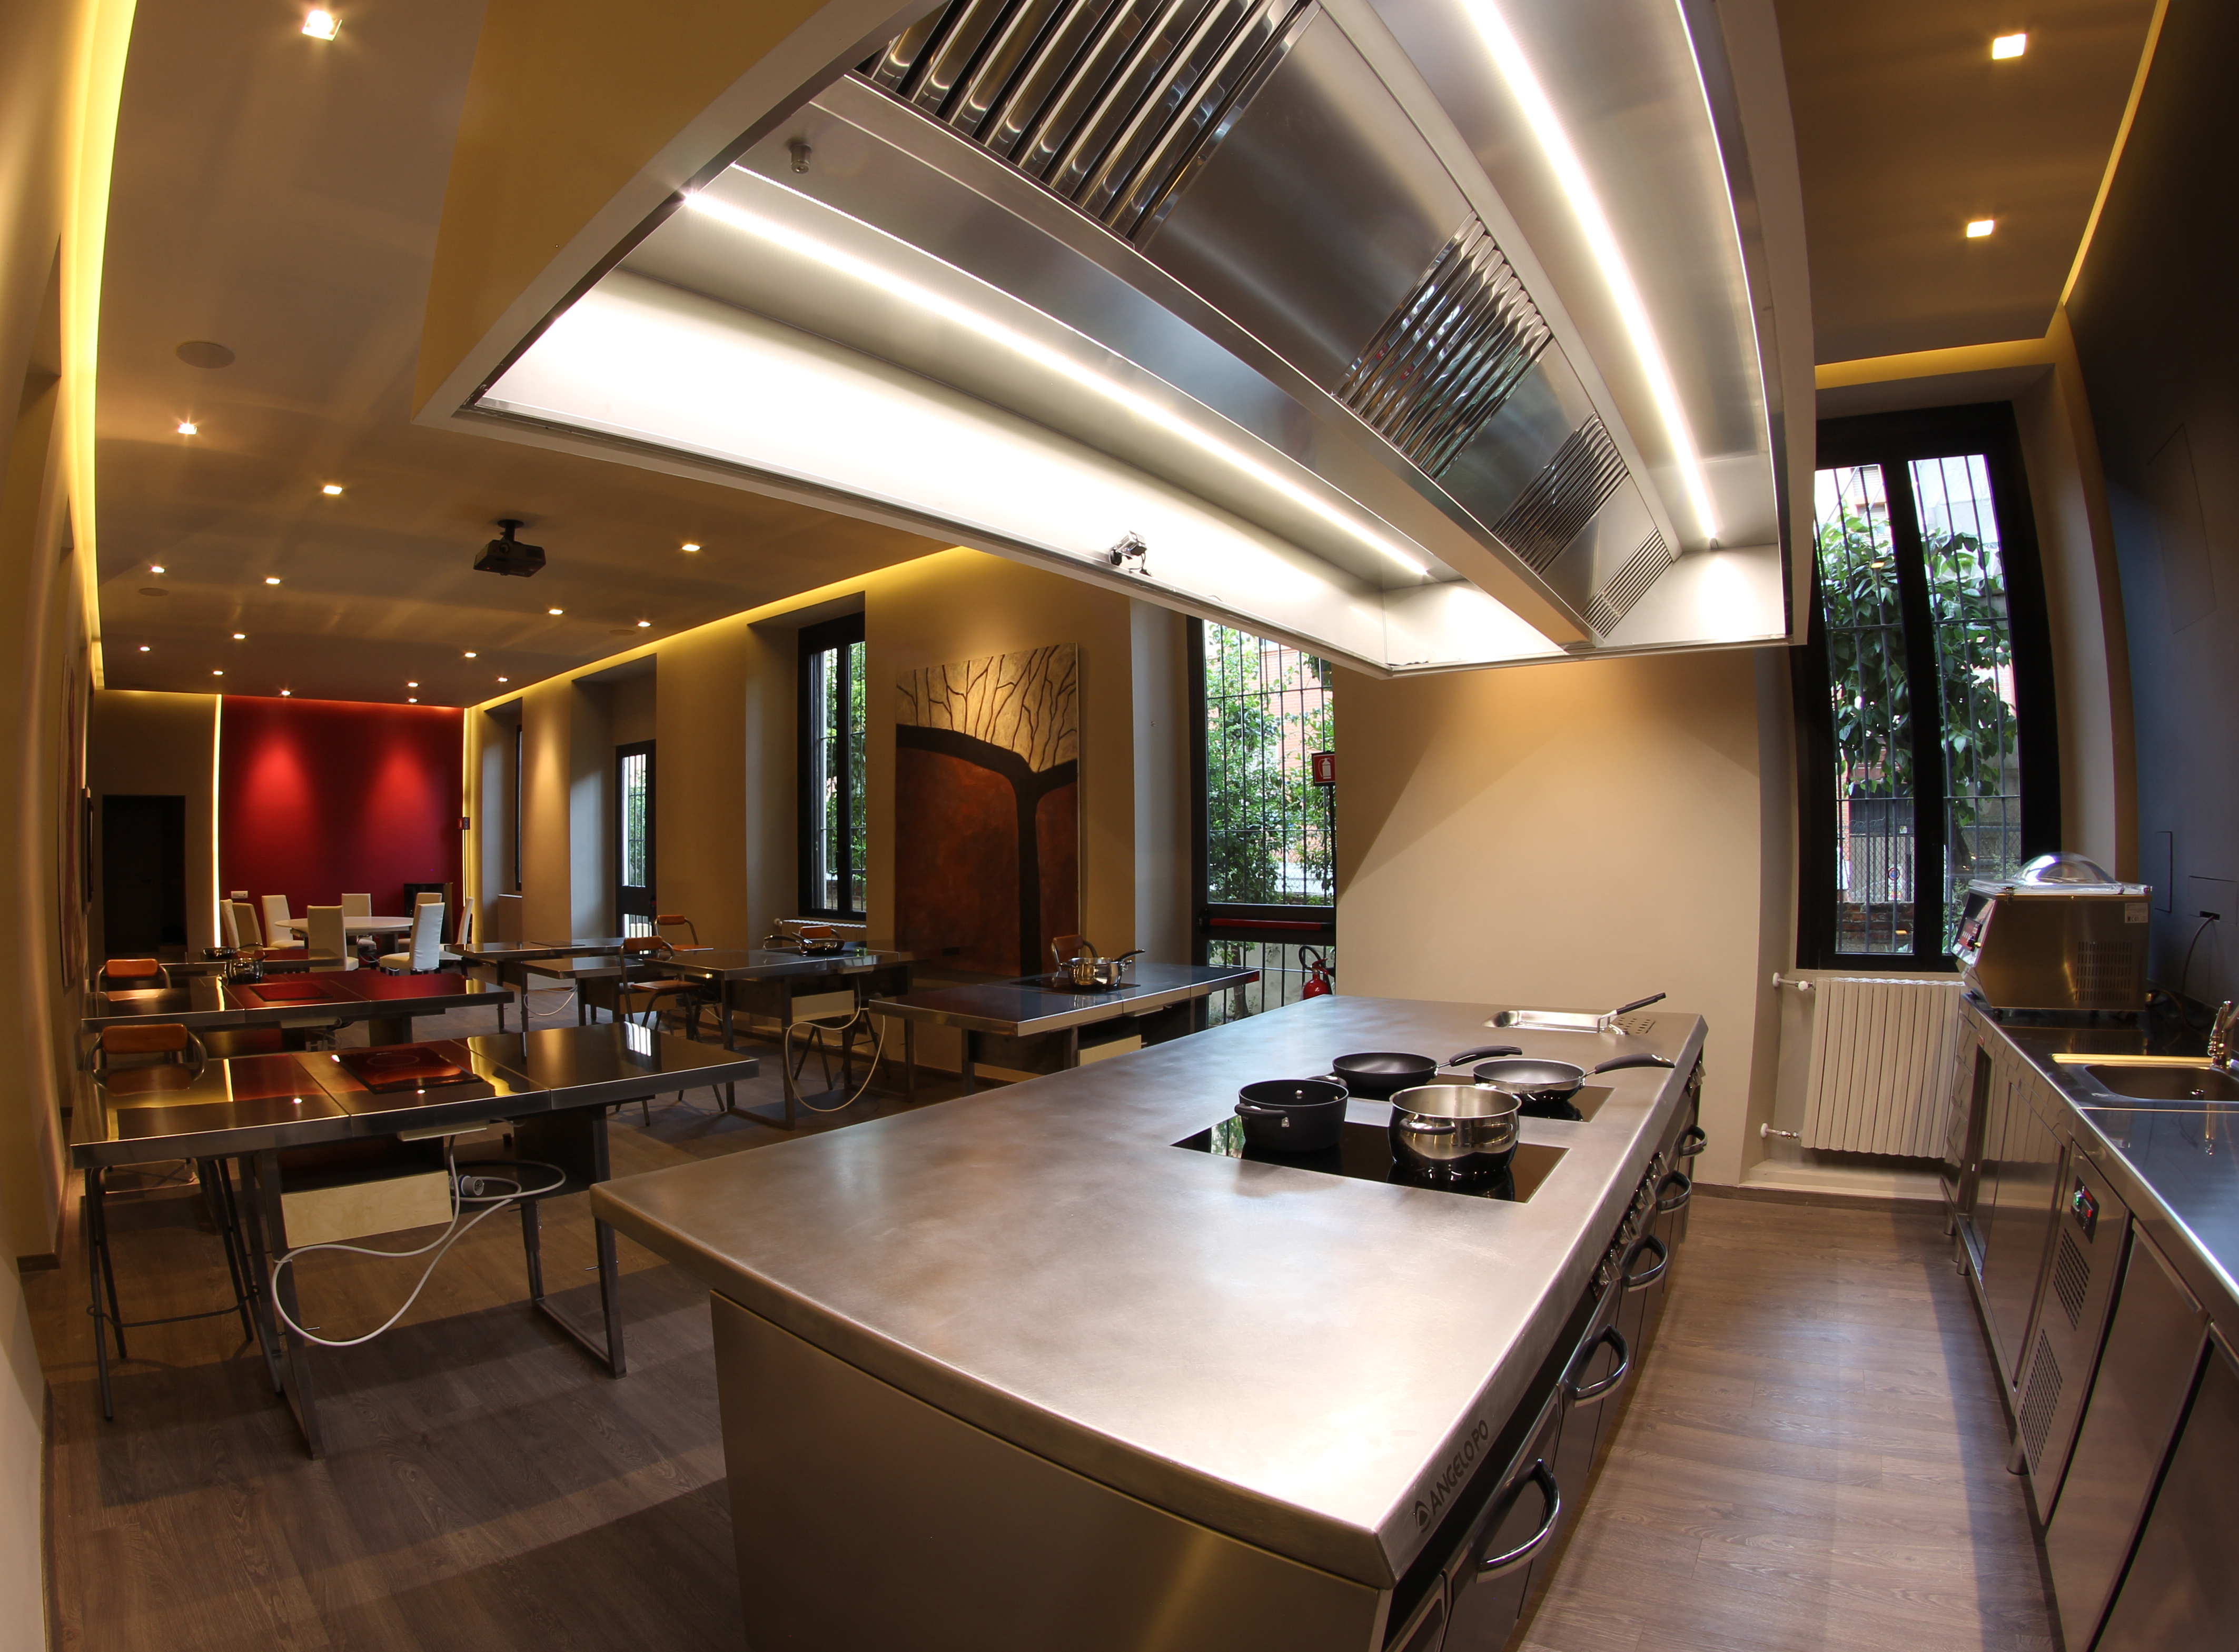 Accademia marchesi for Cucine giapponesi